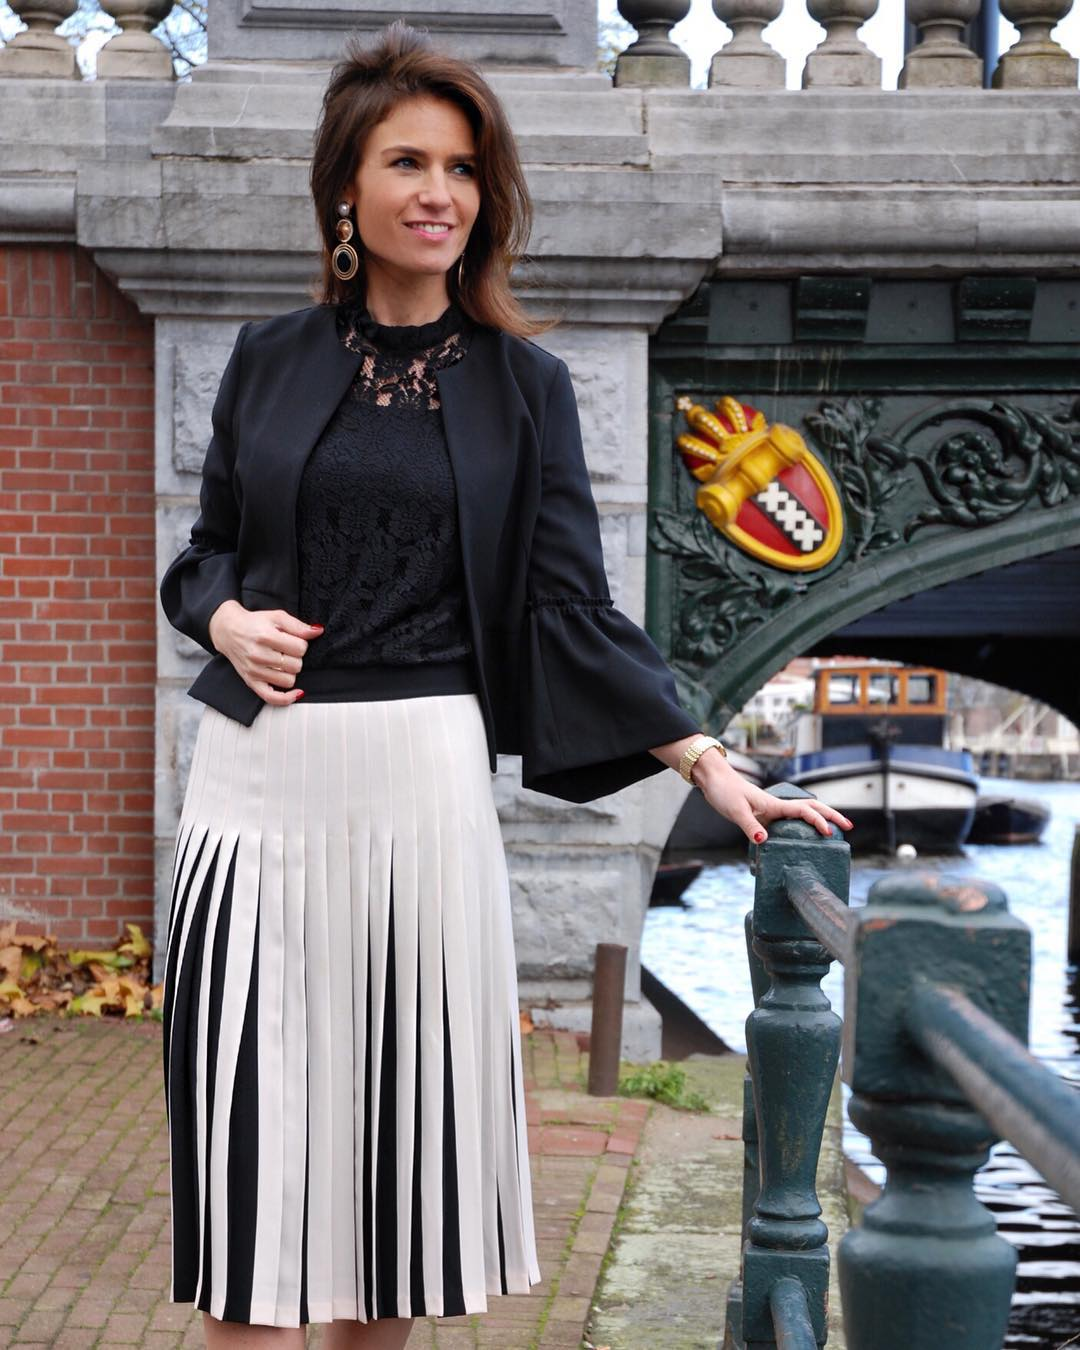 Appealing Black & White Skirt With Net Top And Jacket